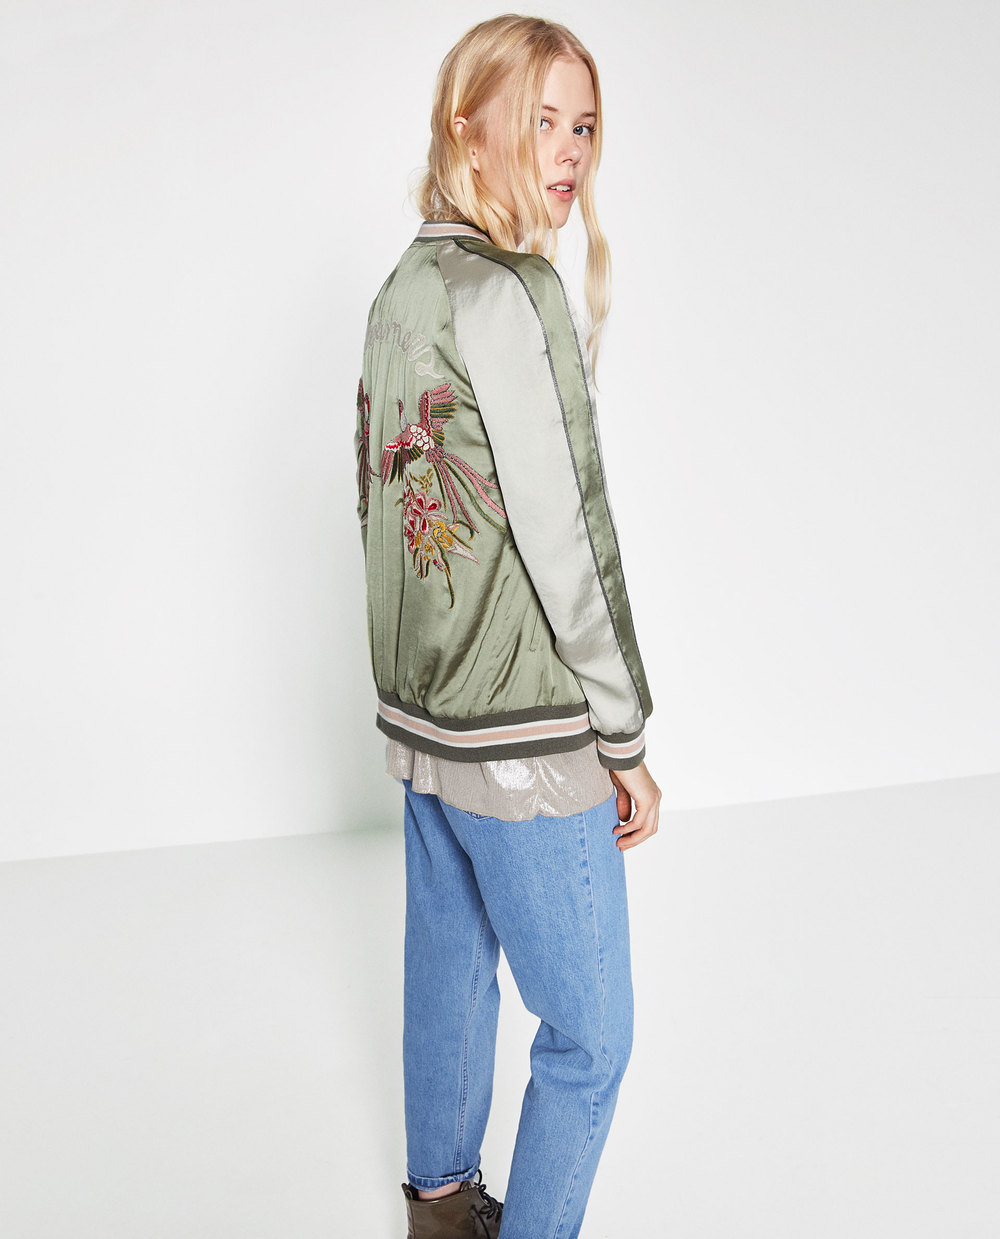 Zara Bird Embroidered Jacket